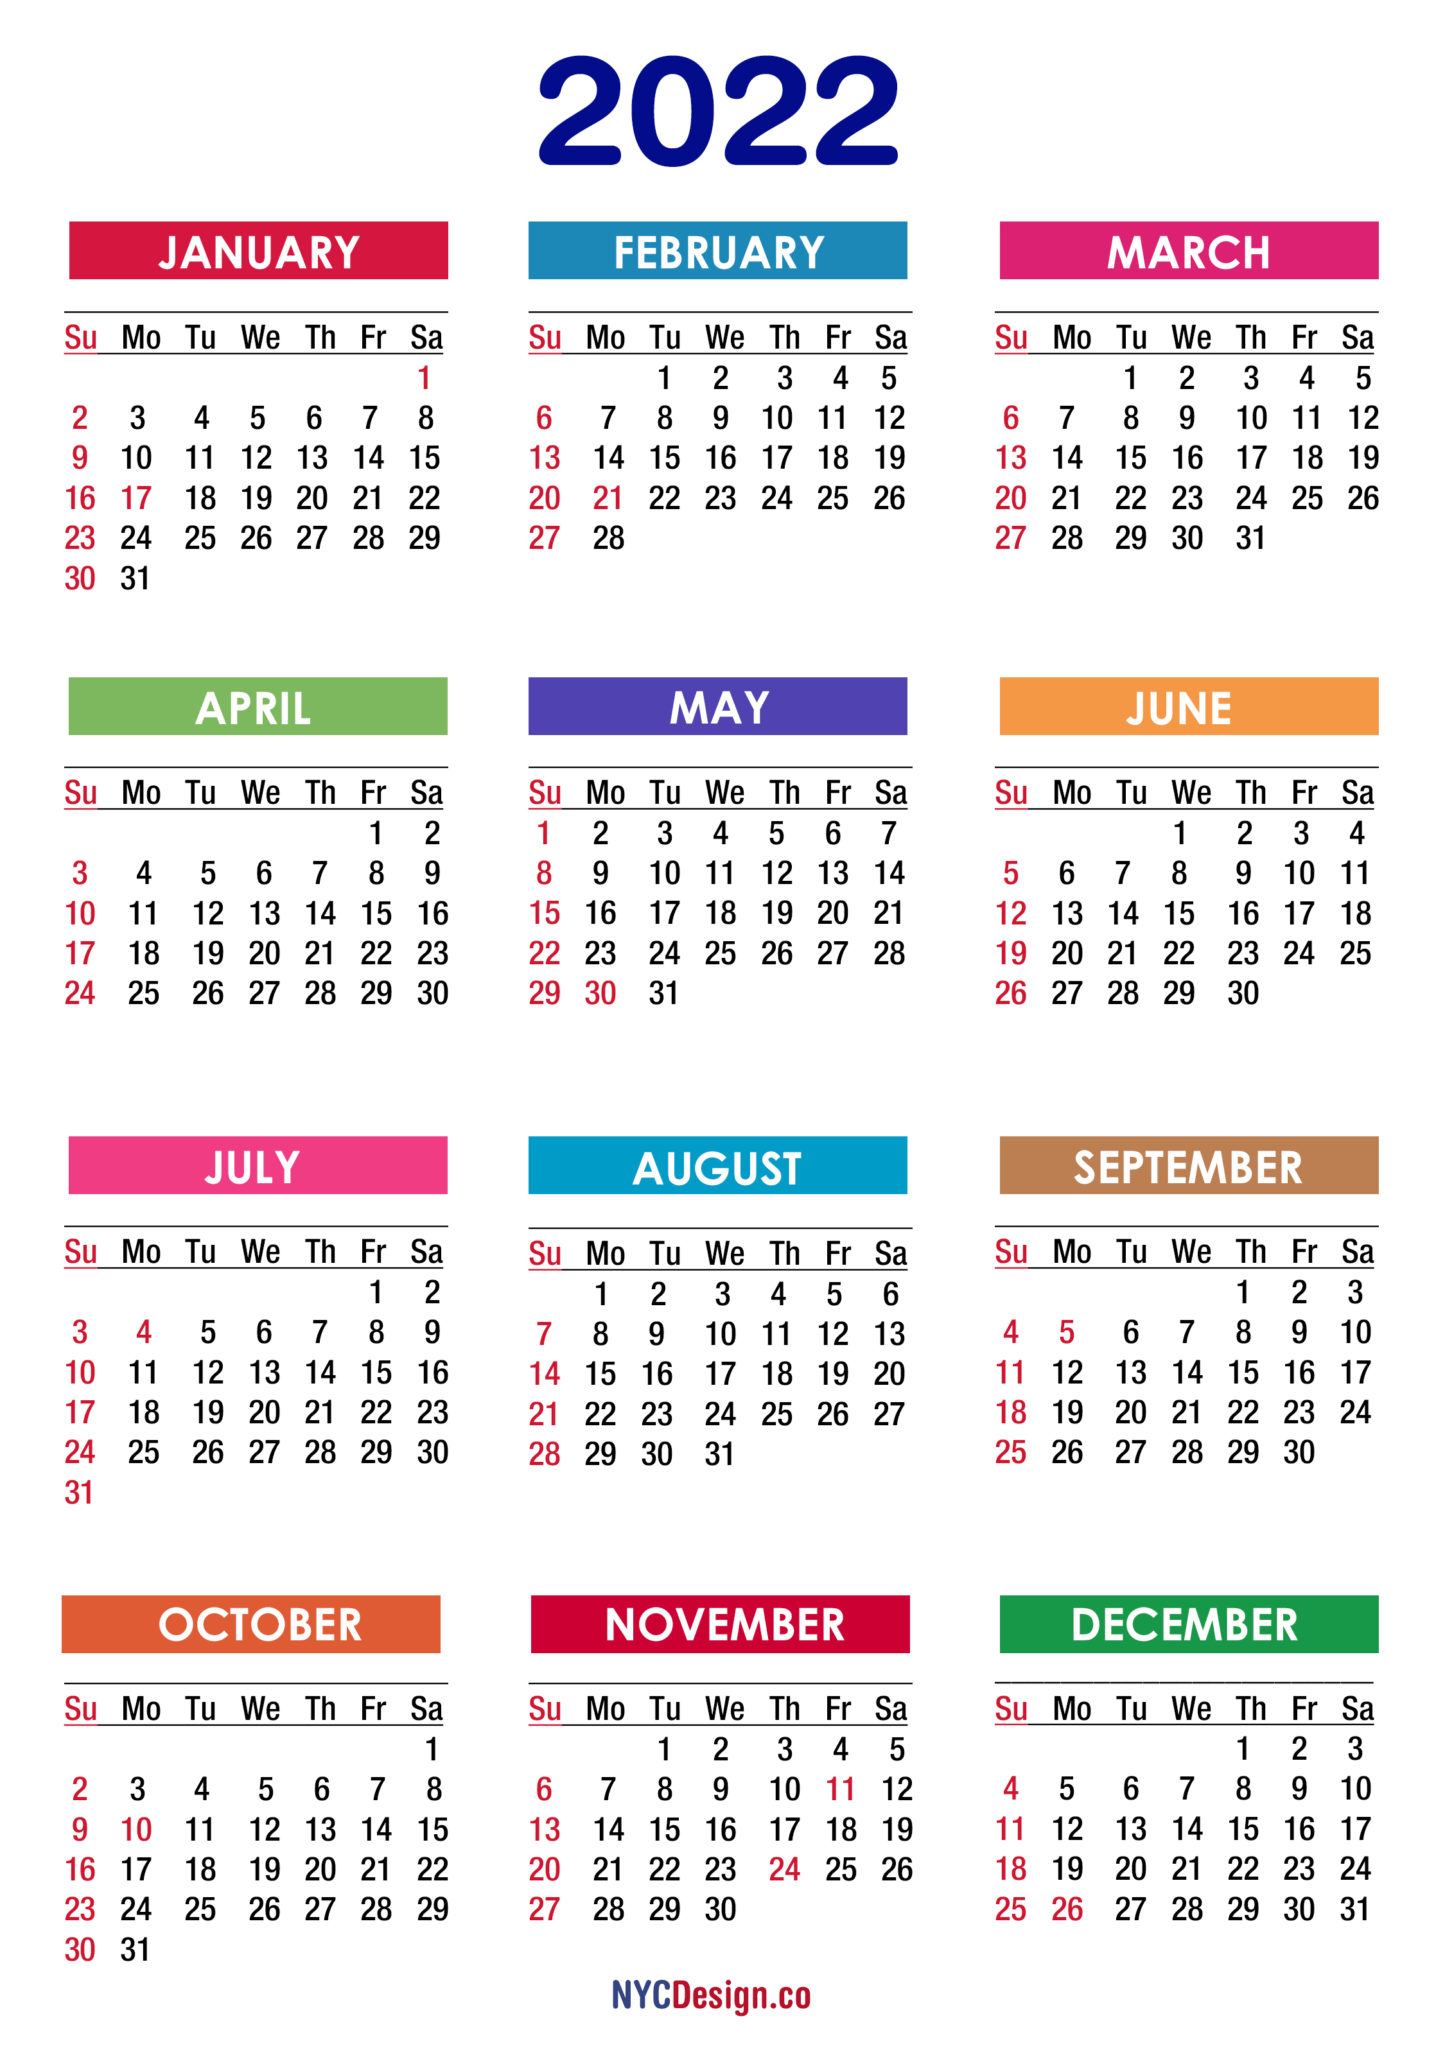 2022 Calendar With Holidays, Printable Free, Pdf, Colorful in 2022 Calendar Everydays A Holiday